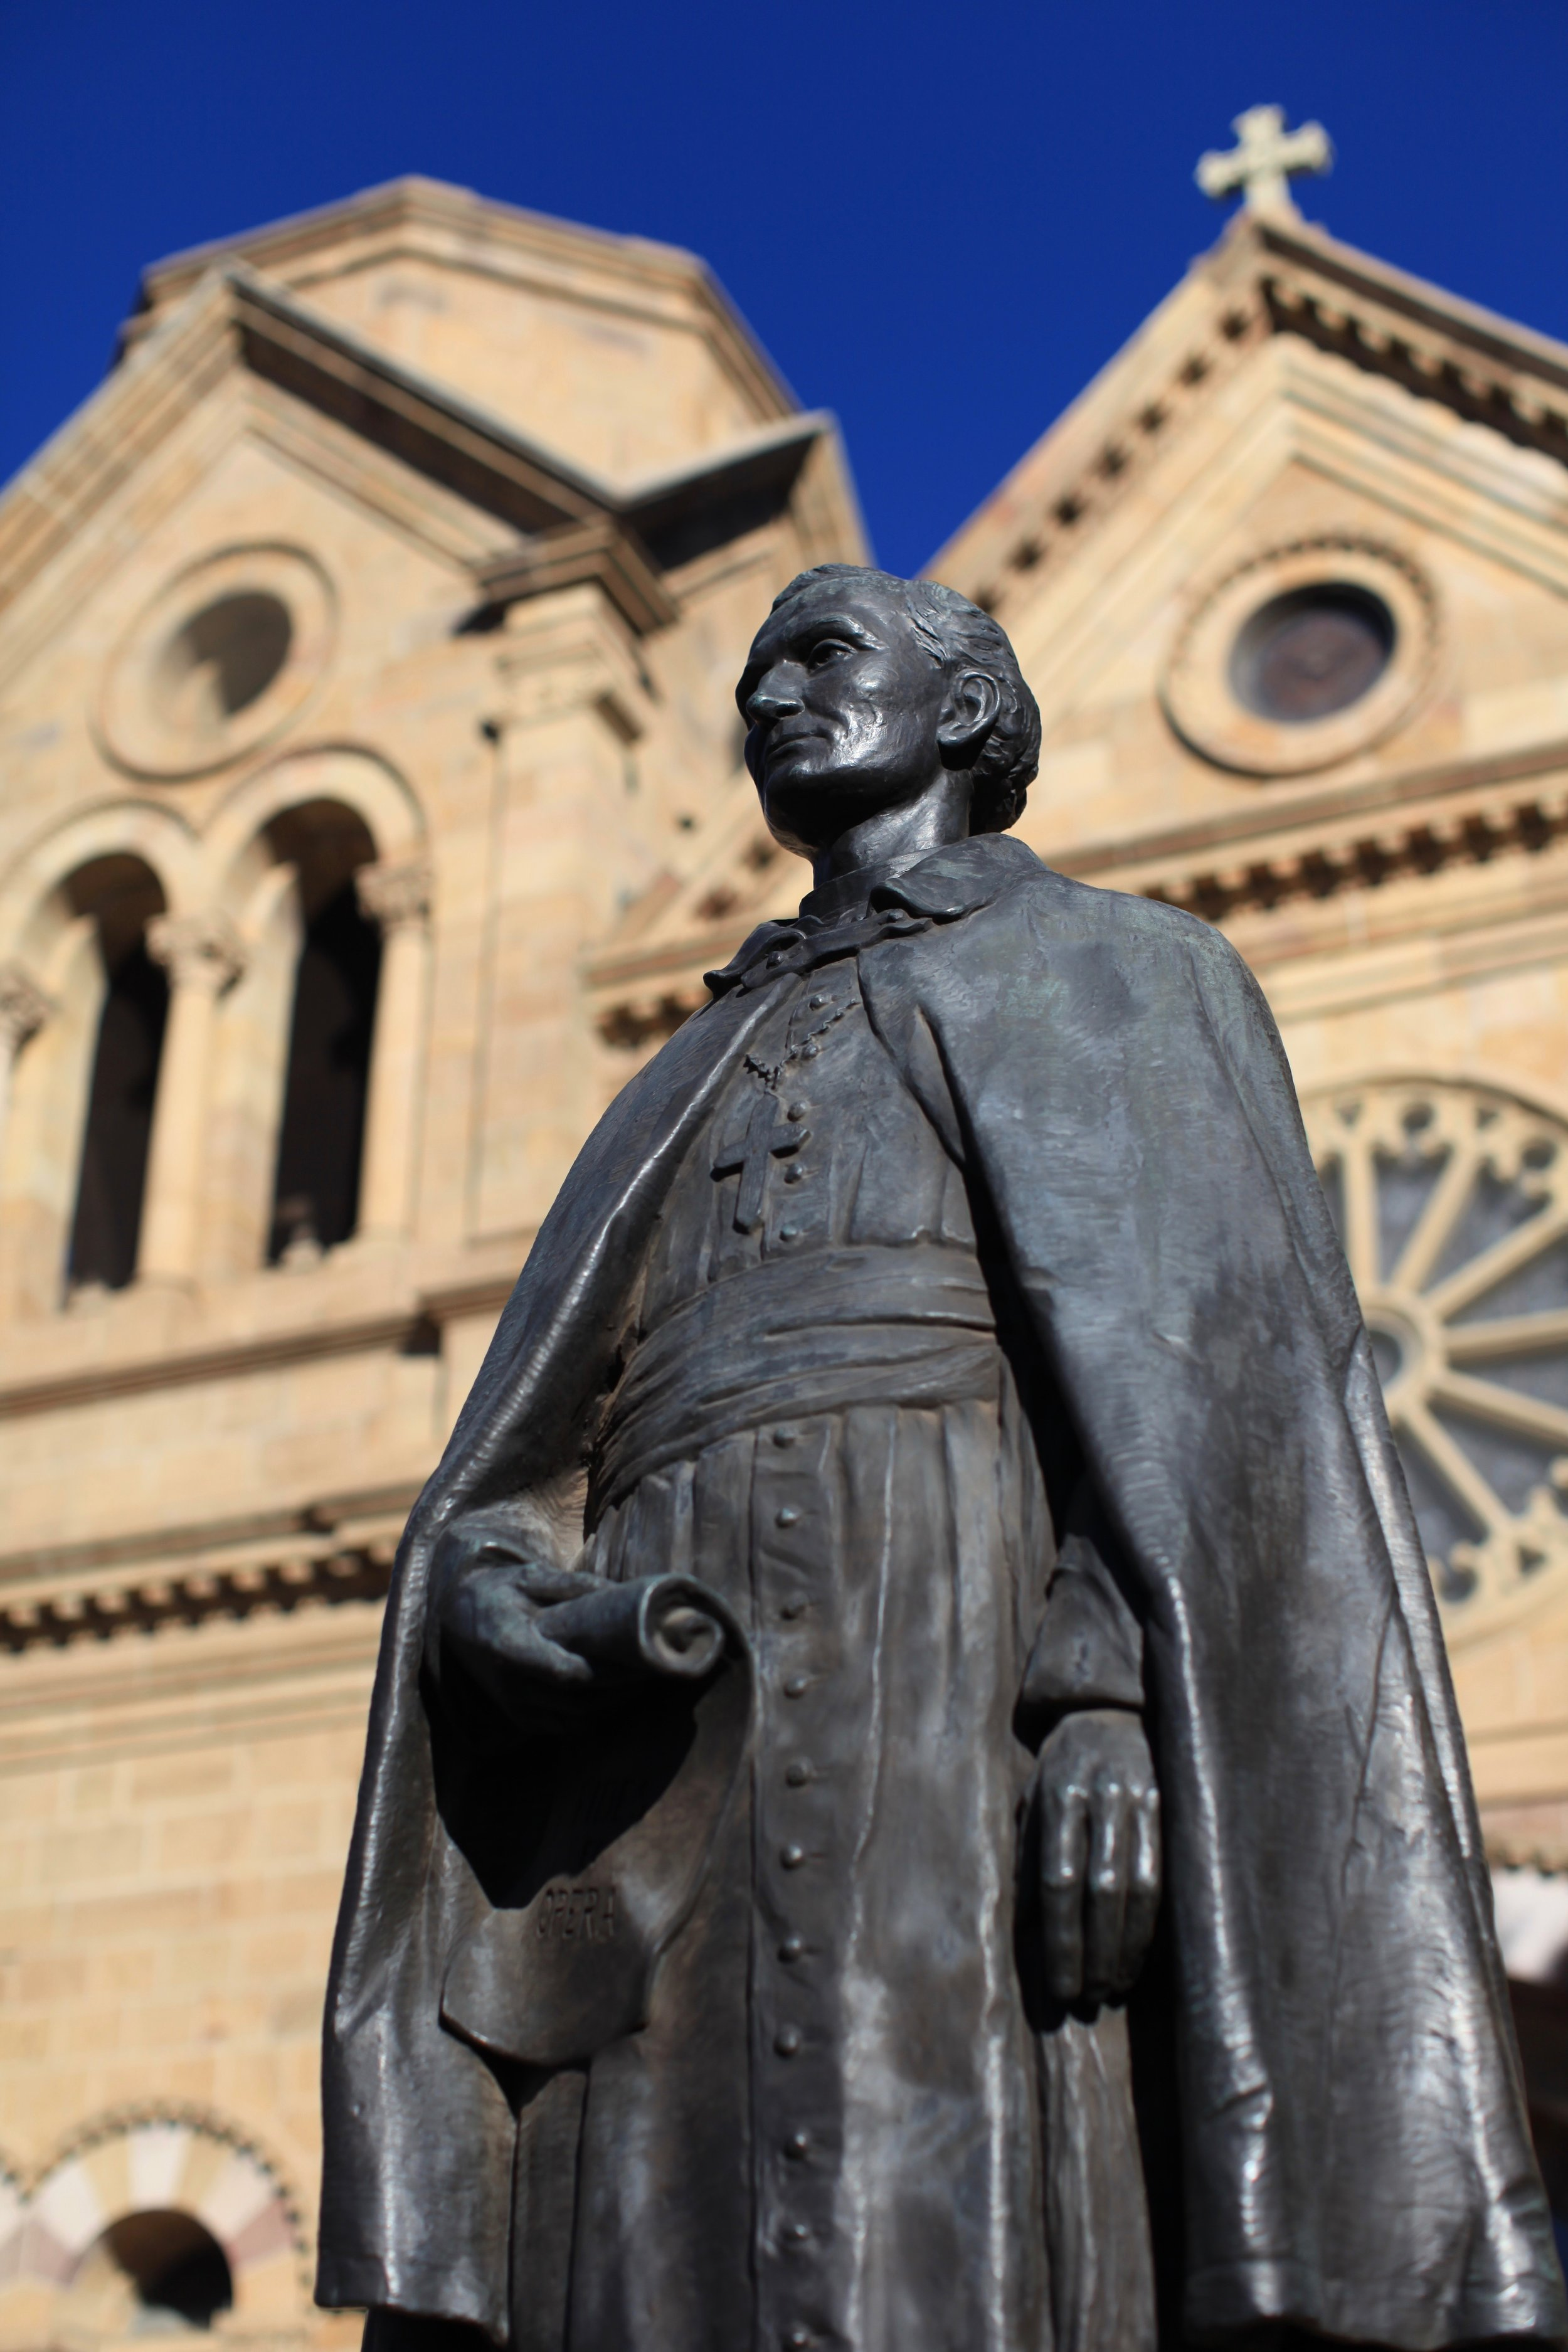 The statue of Jean-Baptiste Lamy - on whom Willa Cather based Bishop Latour - in front of his Cathedral in Santa Fe.